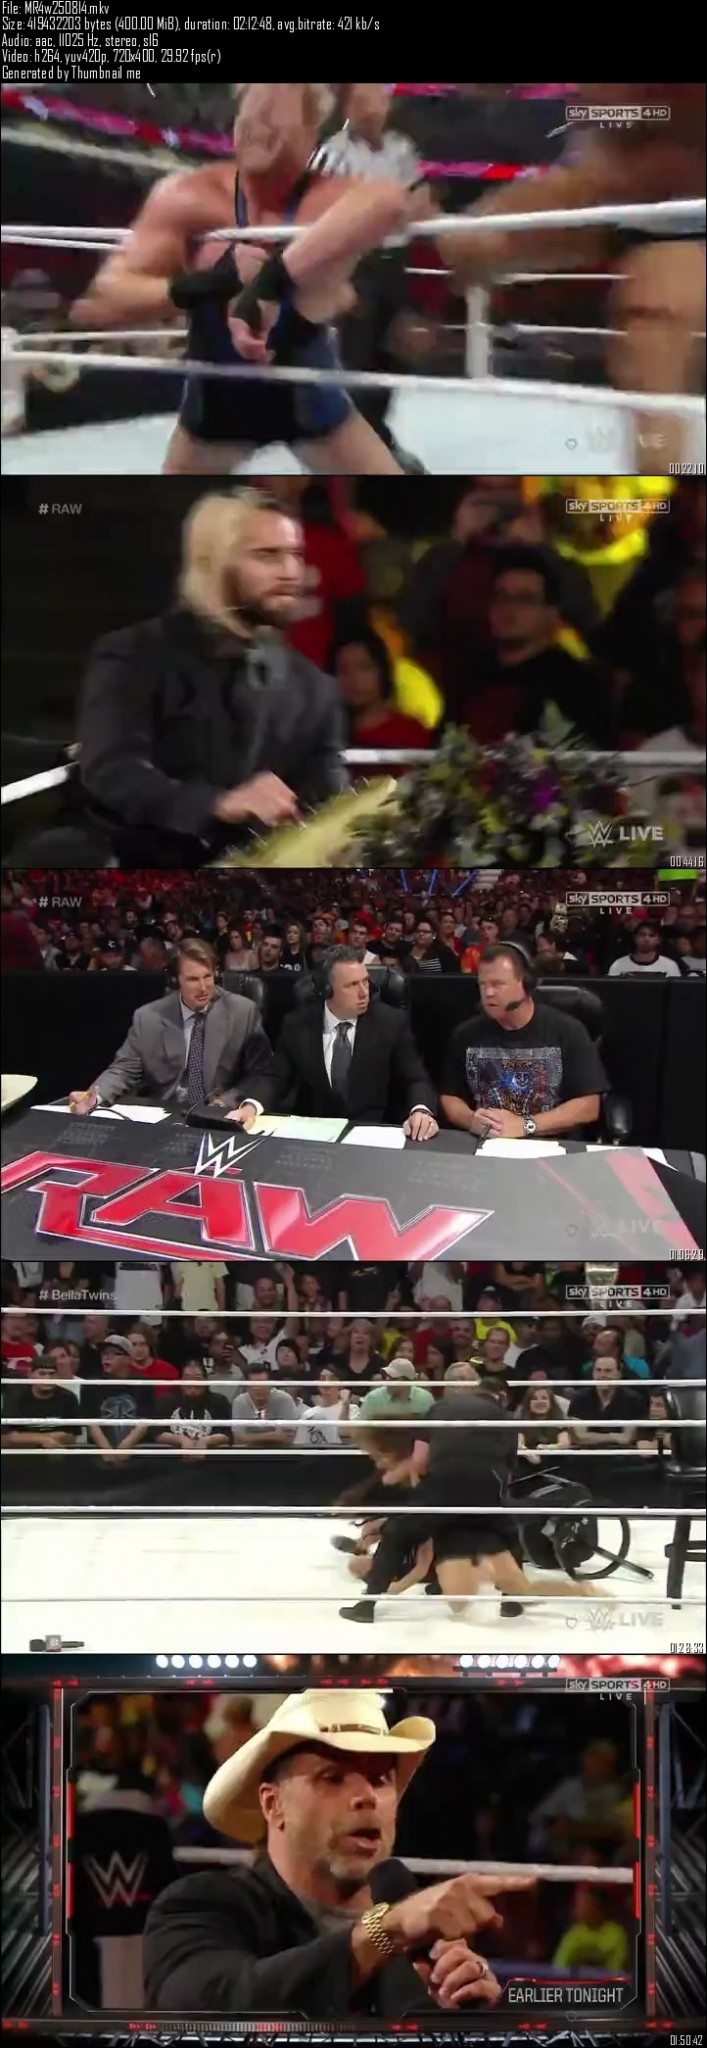 WWE Monday Night Raw 25th August (2014)